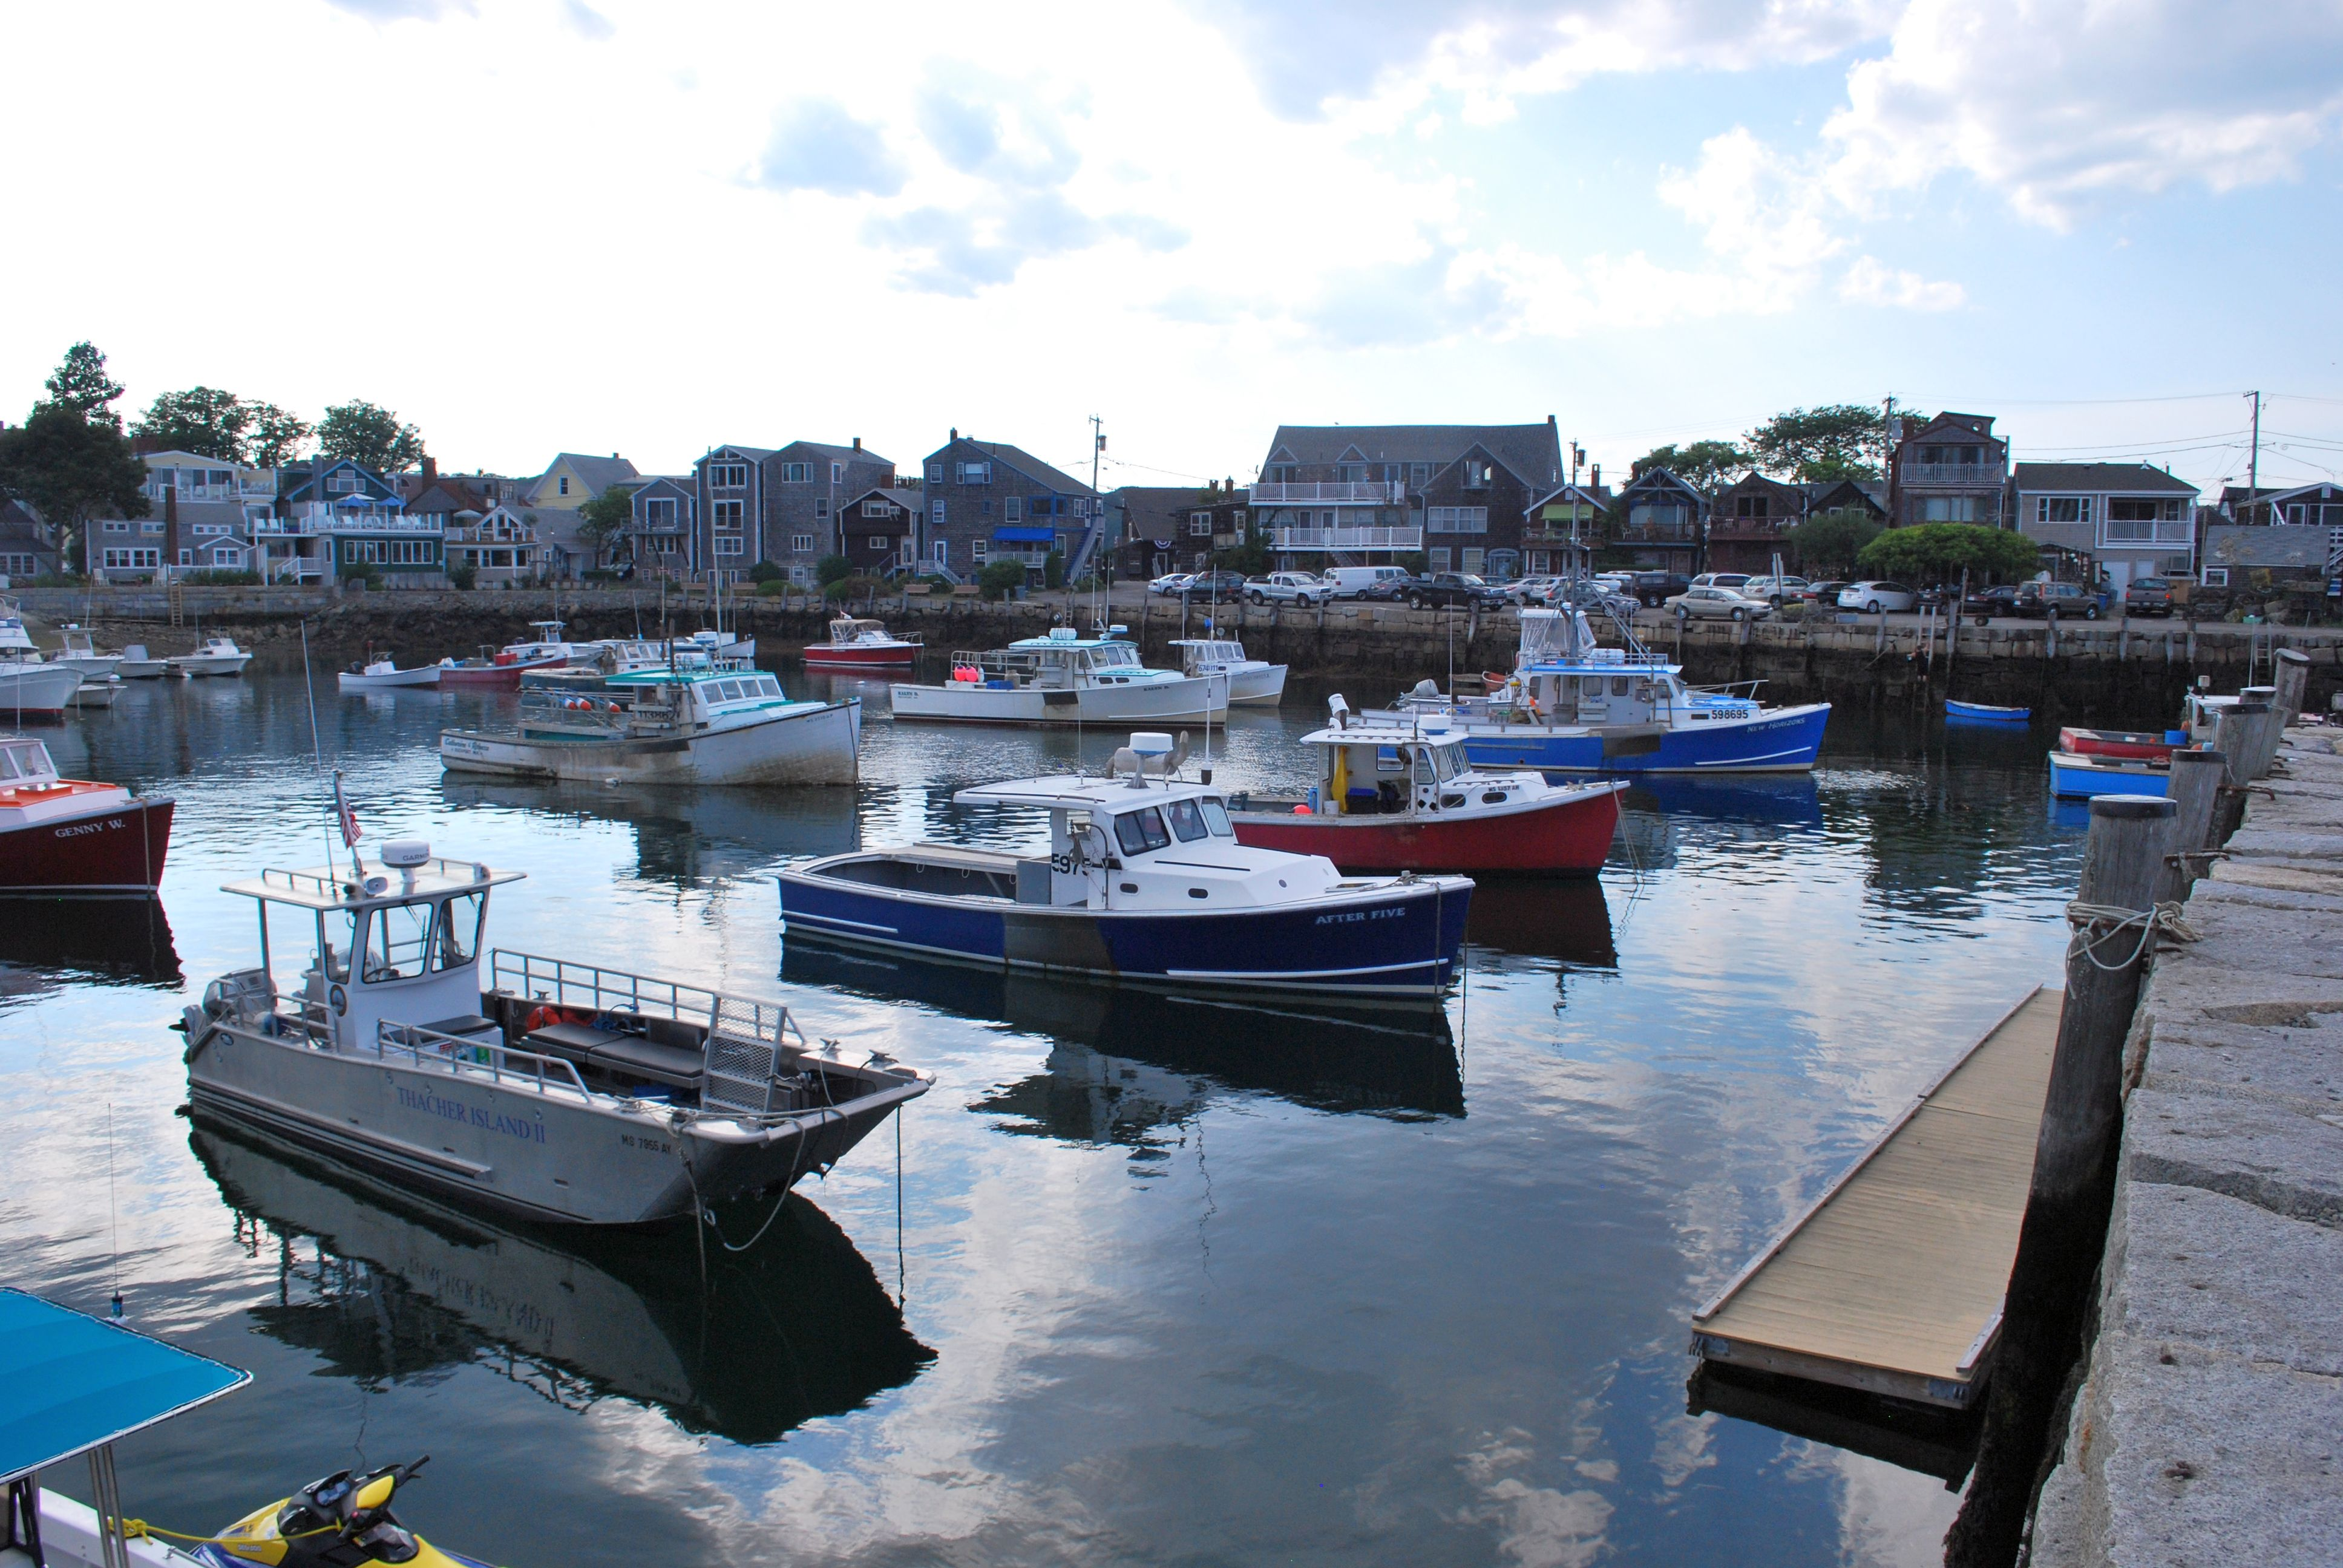 Rockport Massachusetts: Picturesque New England Fishing Village ...